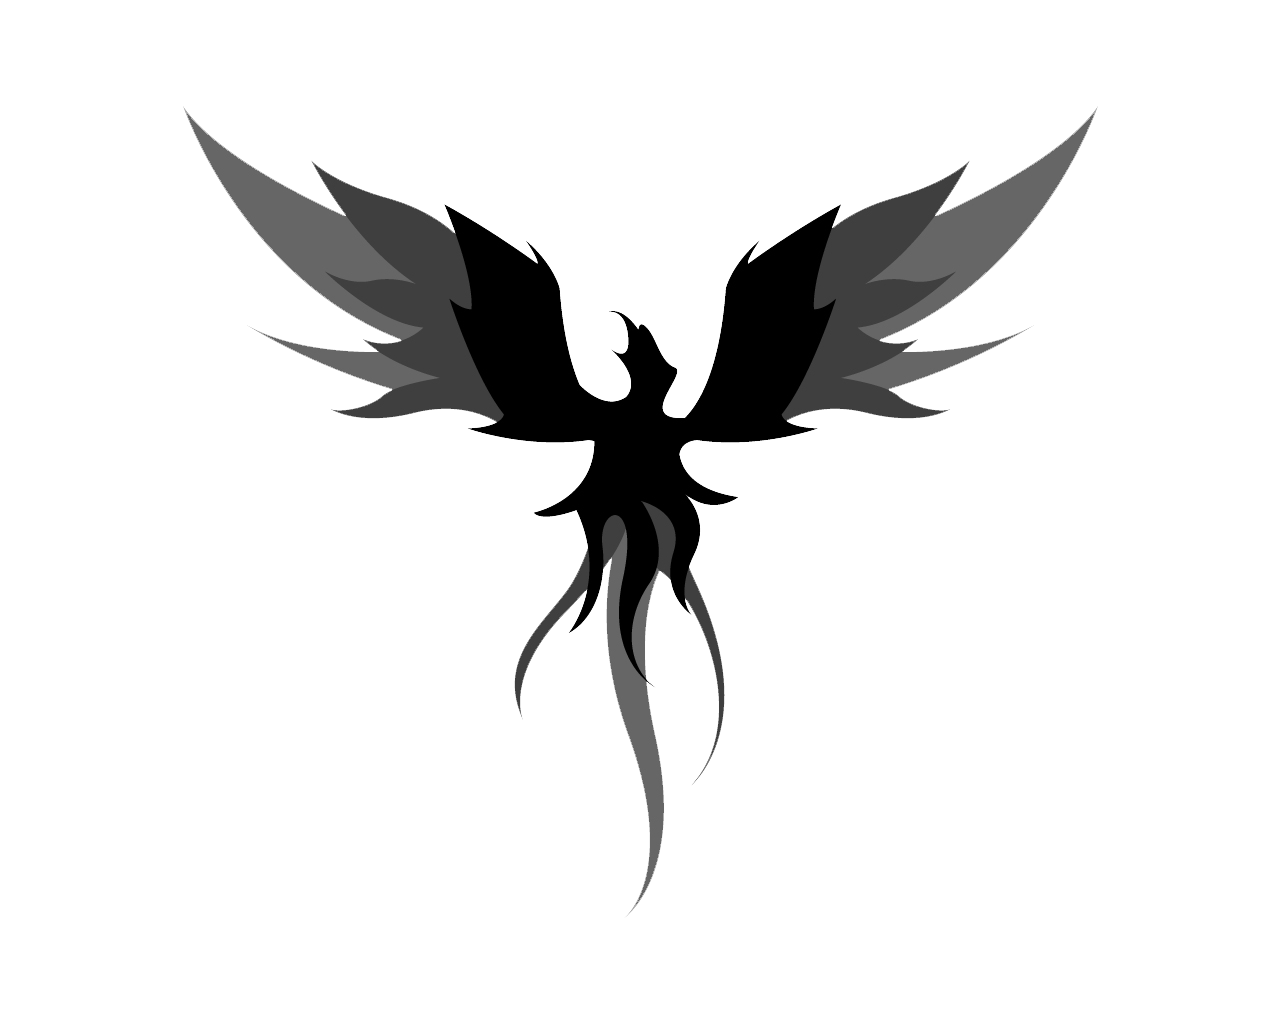 Phoenix black and white png. Tattoos transparent images pluspng